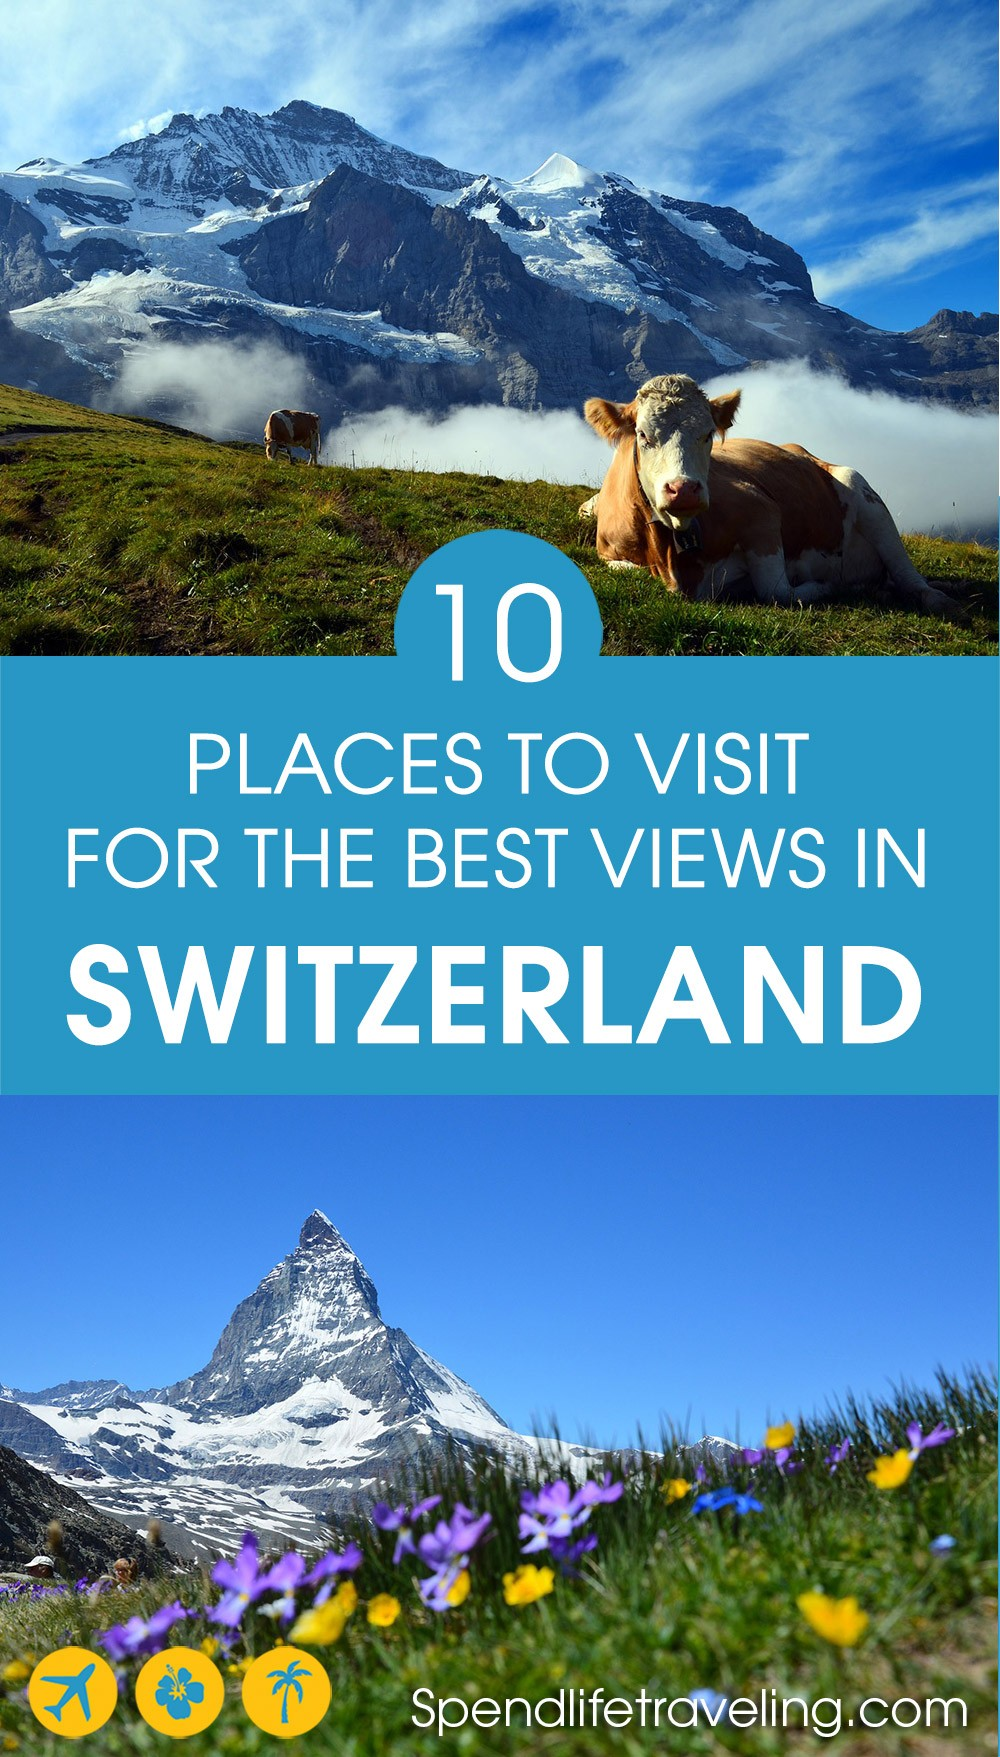 Where to go in #Switzerland for some of the most stunning views. If you love the outdoors and incredible views, this list is for you! From hiking tips to gondola rides. #hiking #adventuretravel #photographytravel